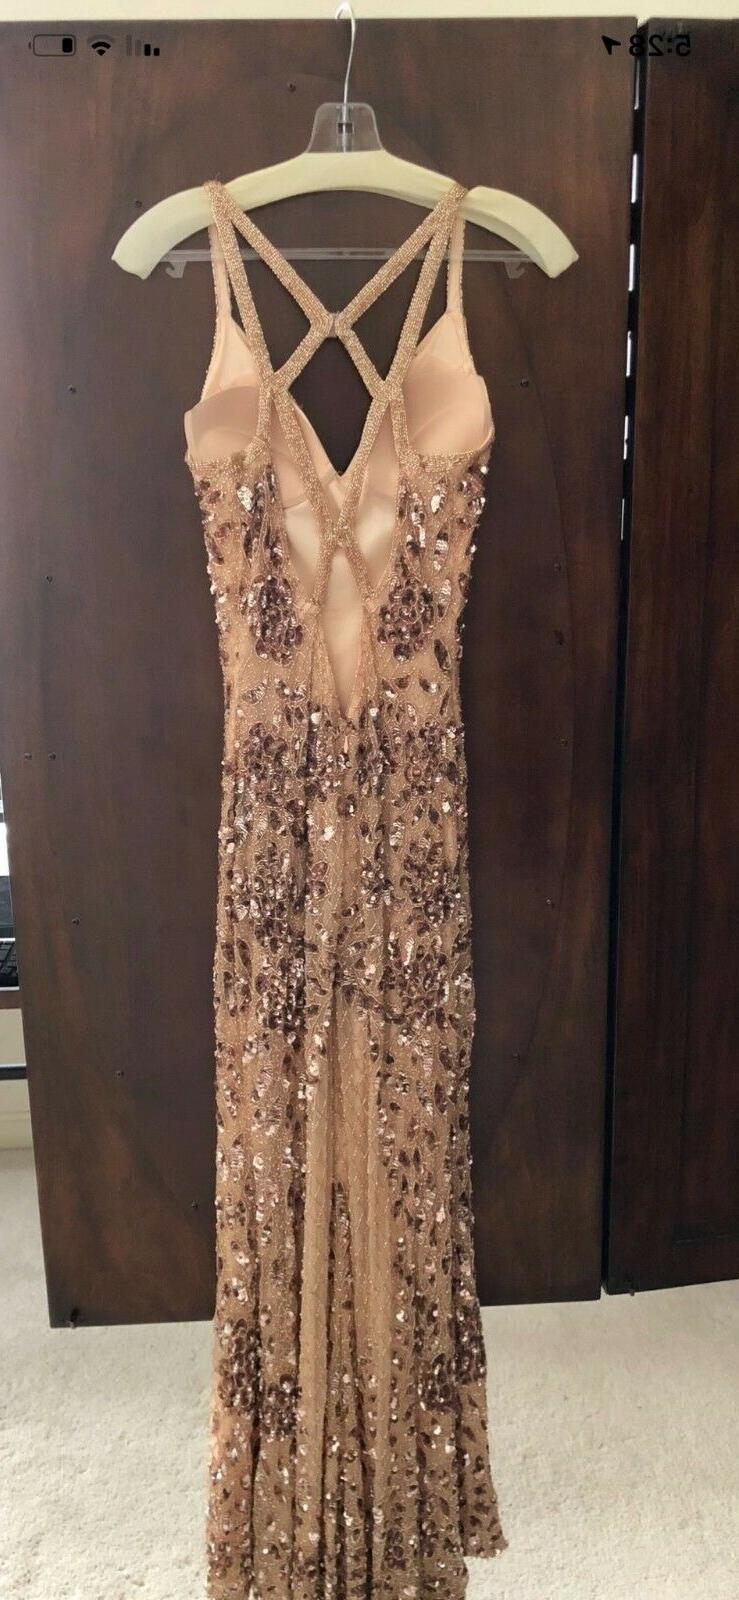 Primavera Rose Sequenced Dress 6 great condition